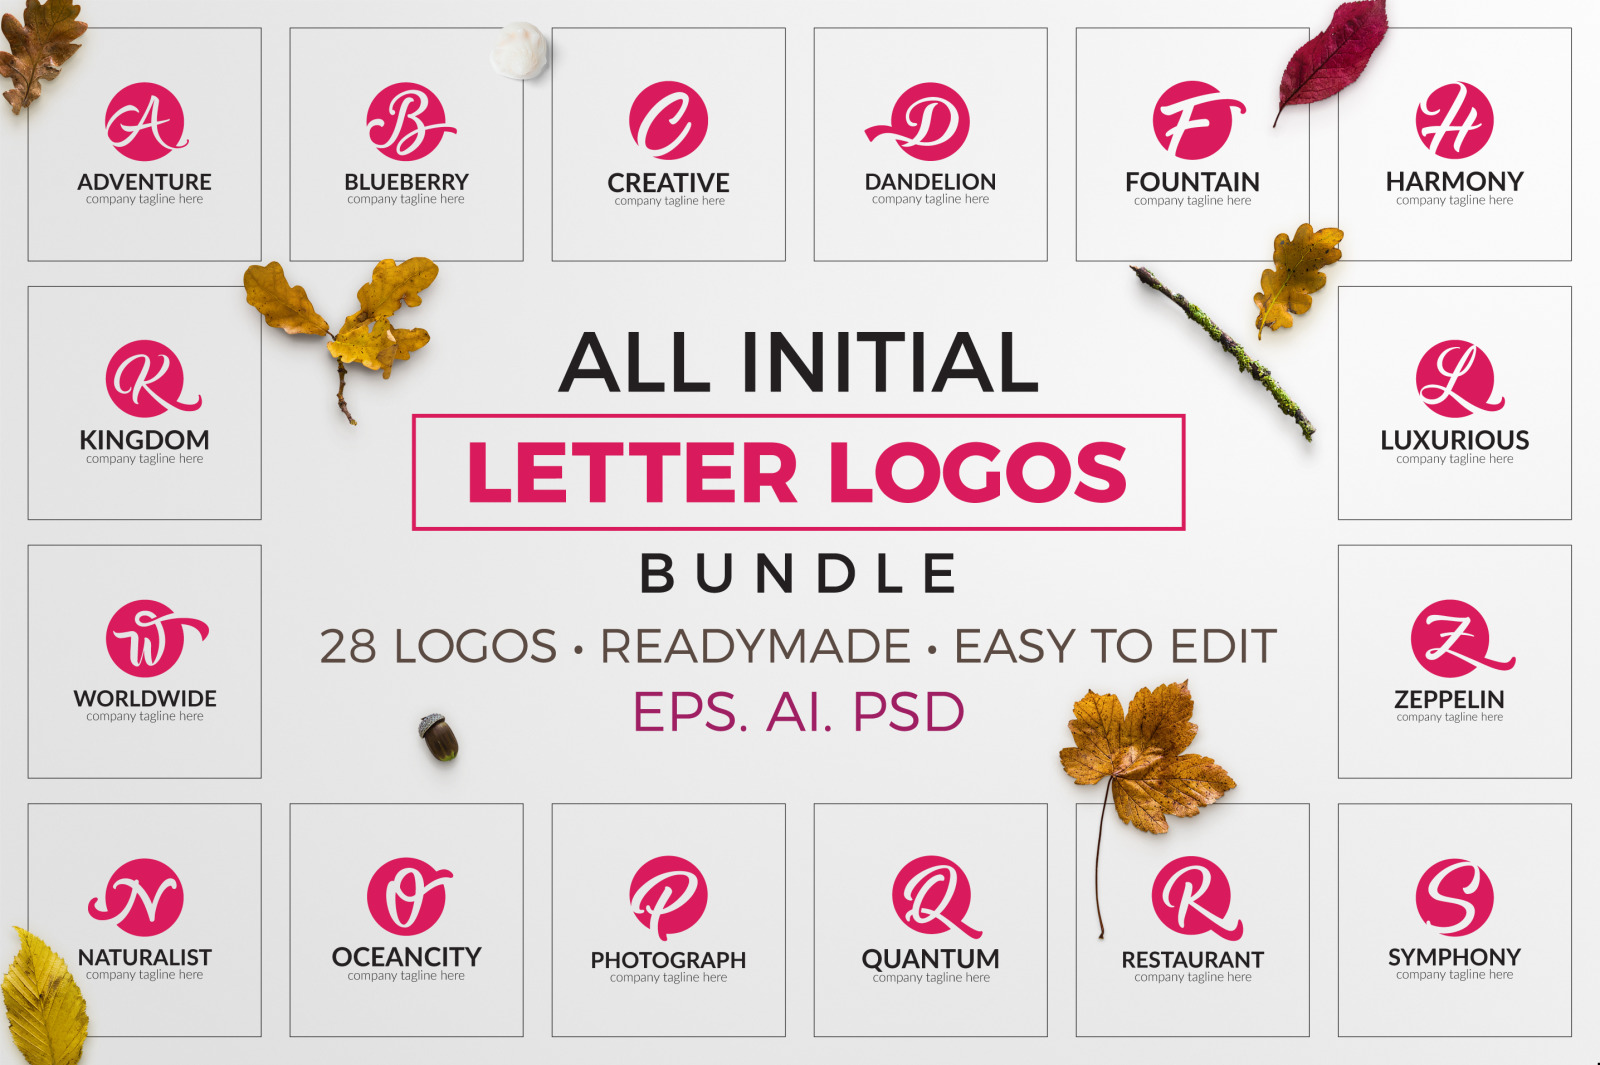 All Initial Letter Logos Bundle